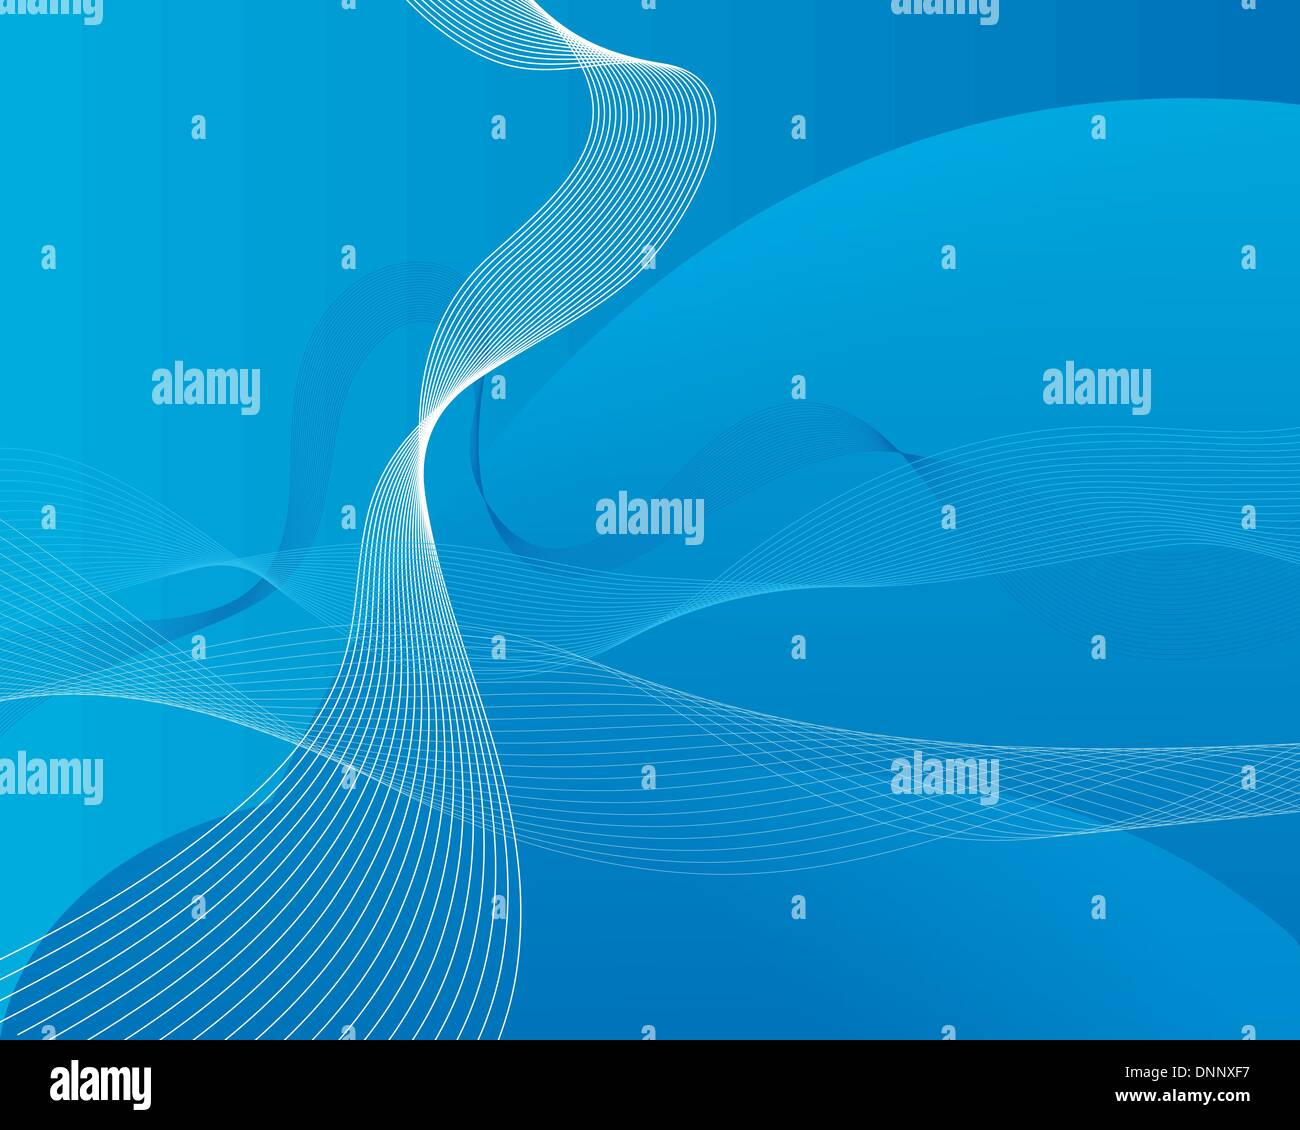 Abstract Water Vector Background With Ocean Waves Stock